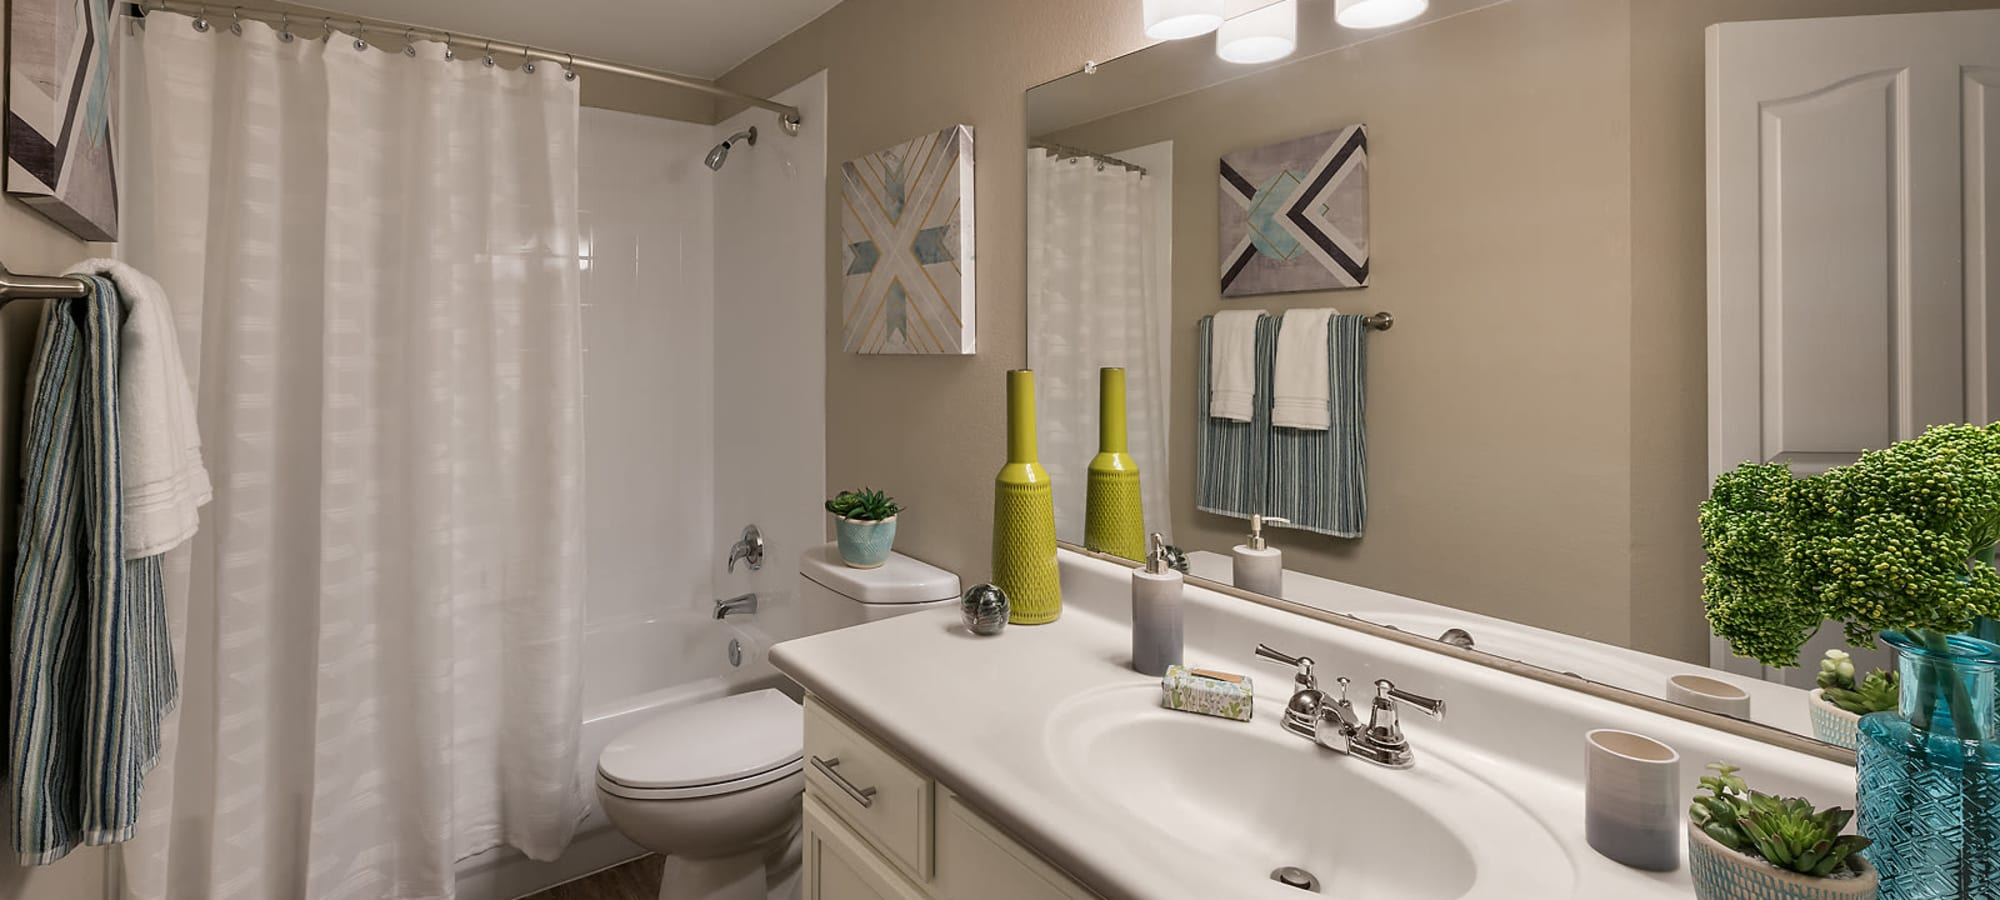 Luxury bathroom with modern upgrades at San Palmas in Chandler, Arizona